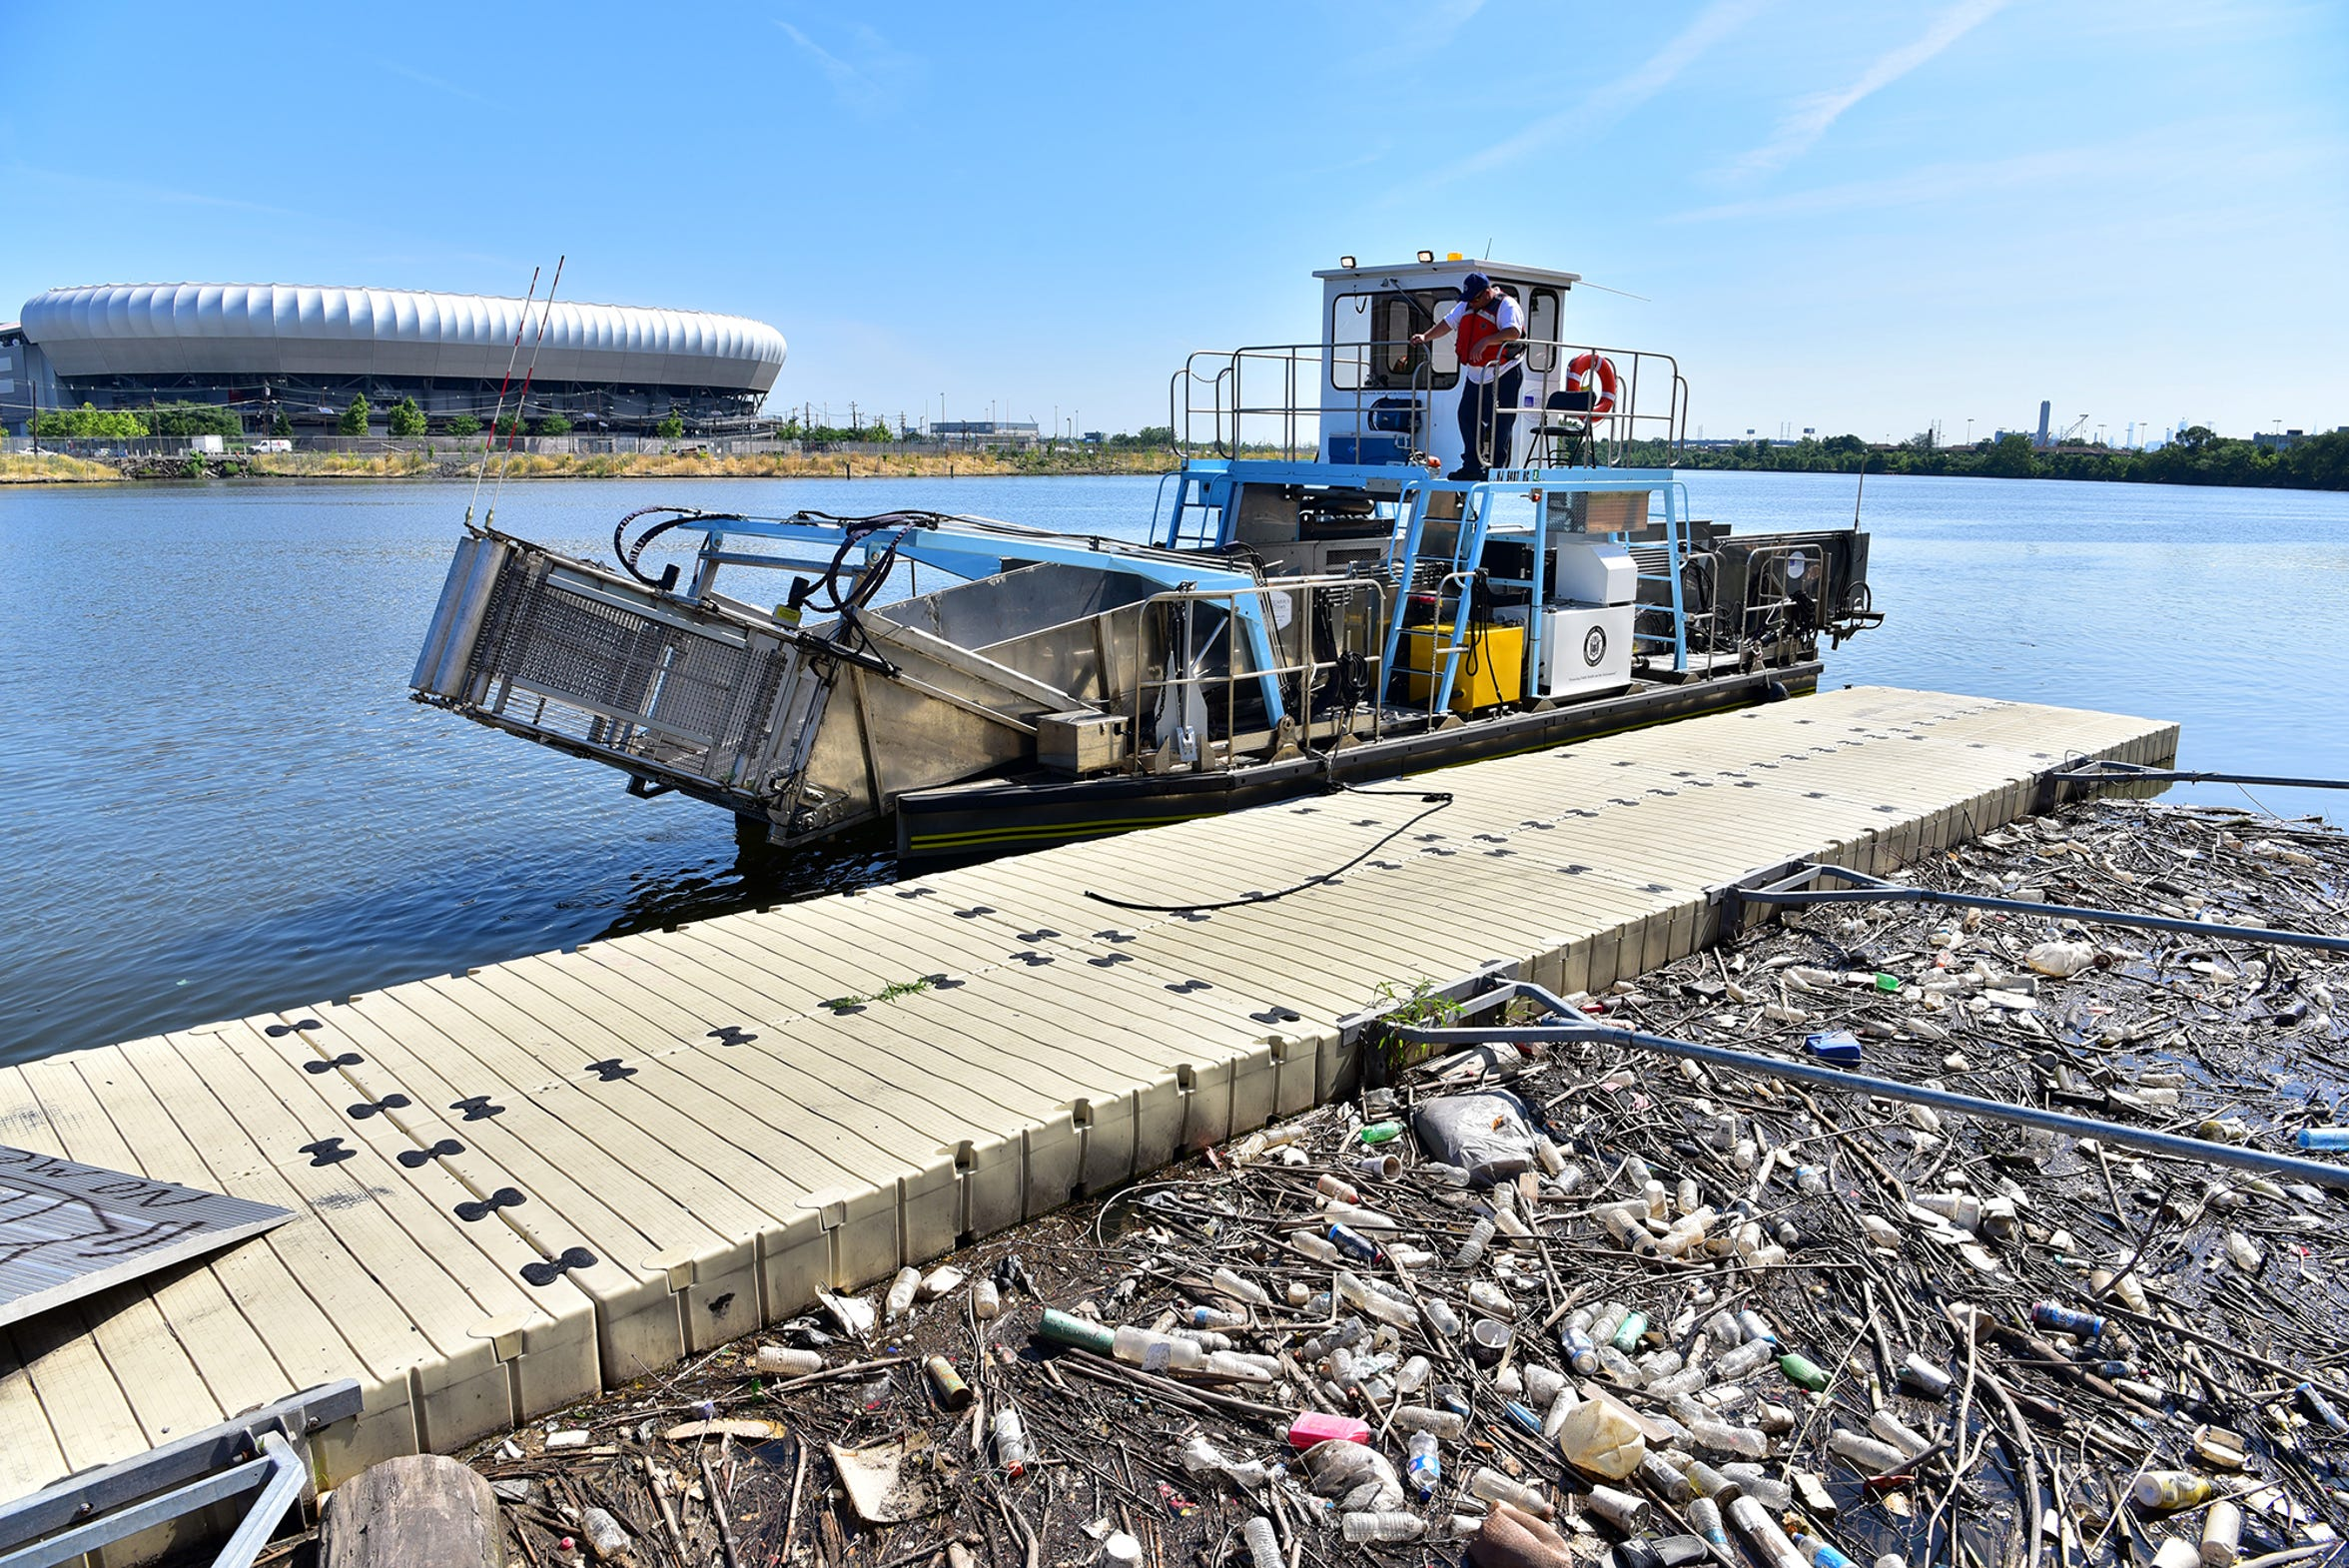 the Passaic Valley Sewerage Commission skimmer boat as they sweep garbage from the surface of the Passaic River